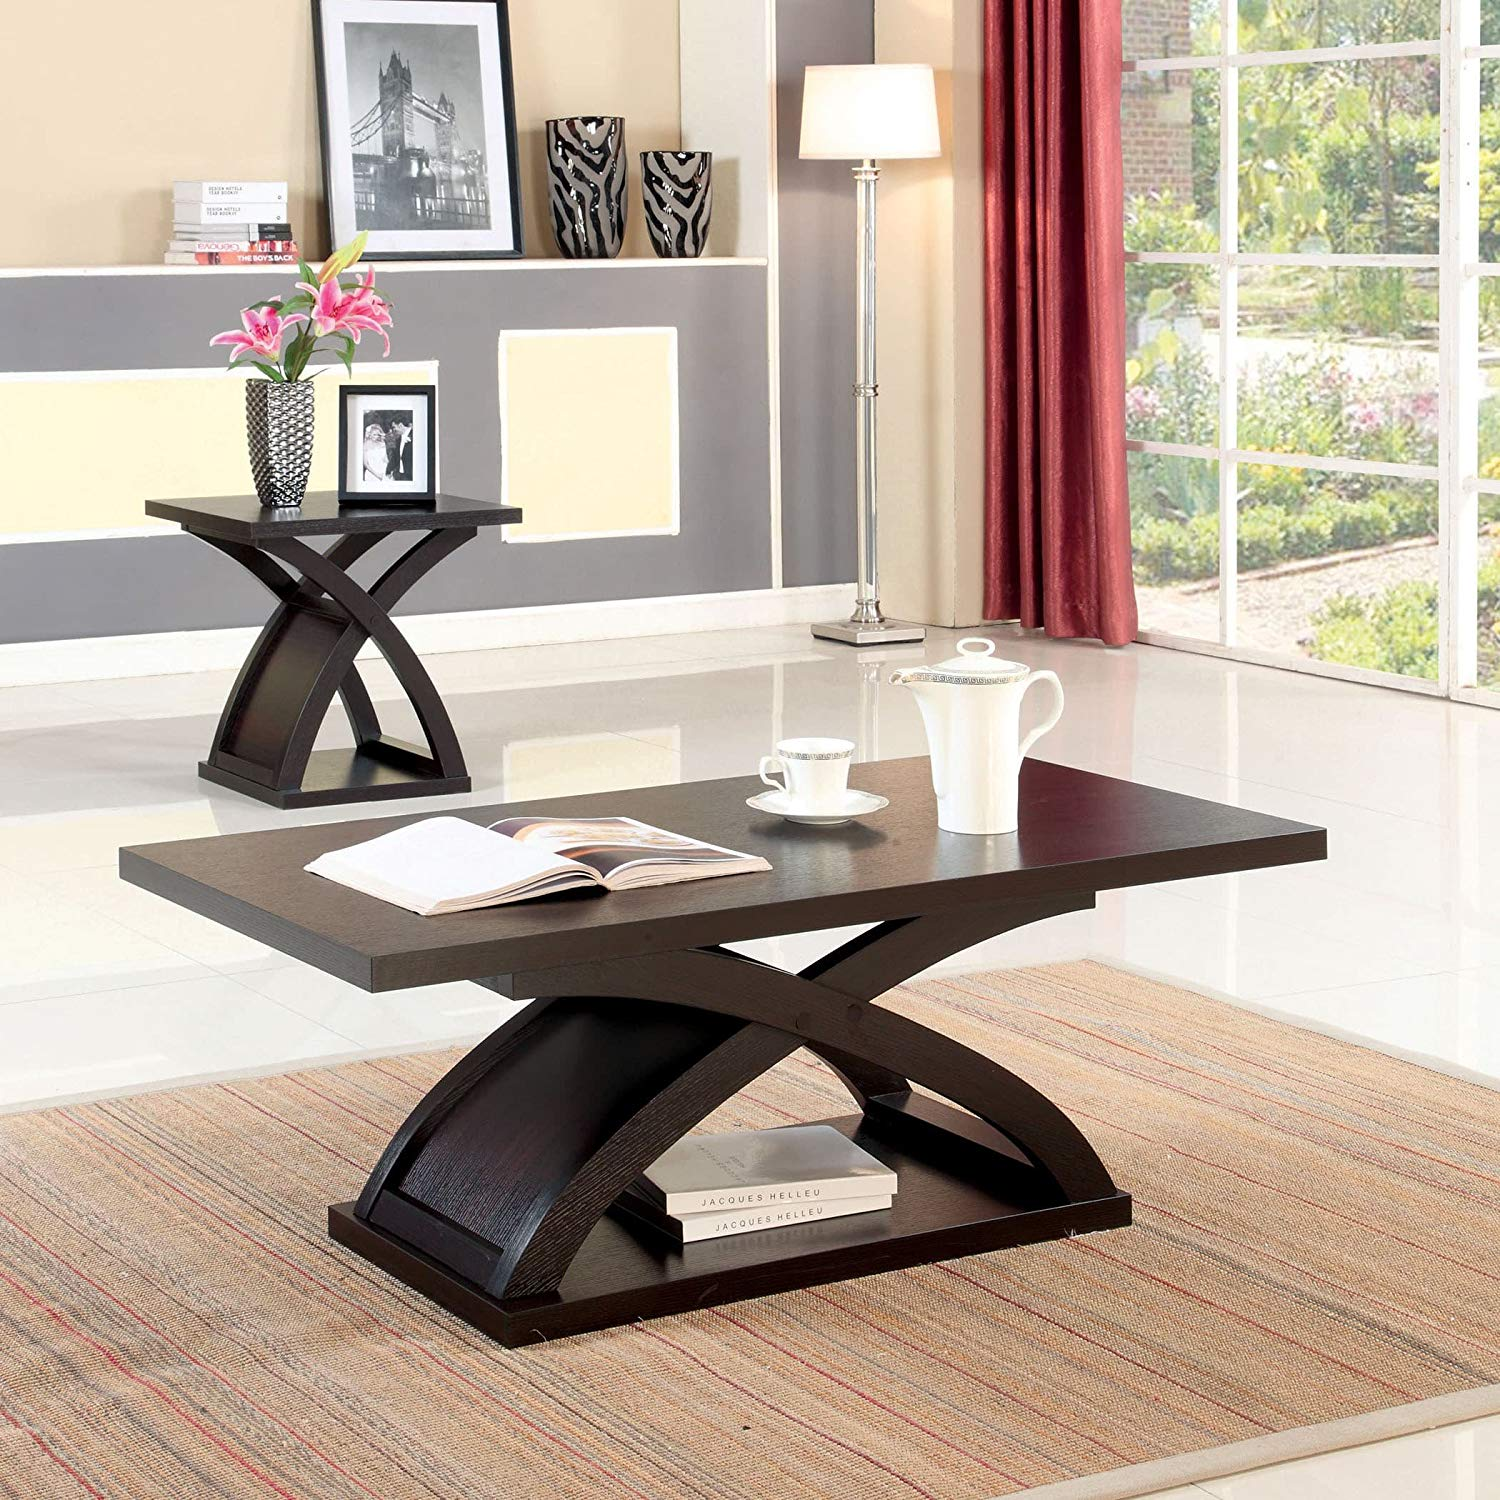 modern piece base accent table set includes coffee and end contemporary functional made from solid wood veneers round glass top bedside vintage telephone formal dining room